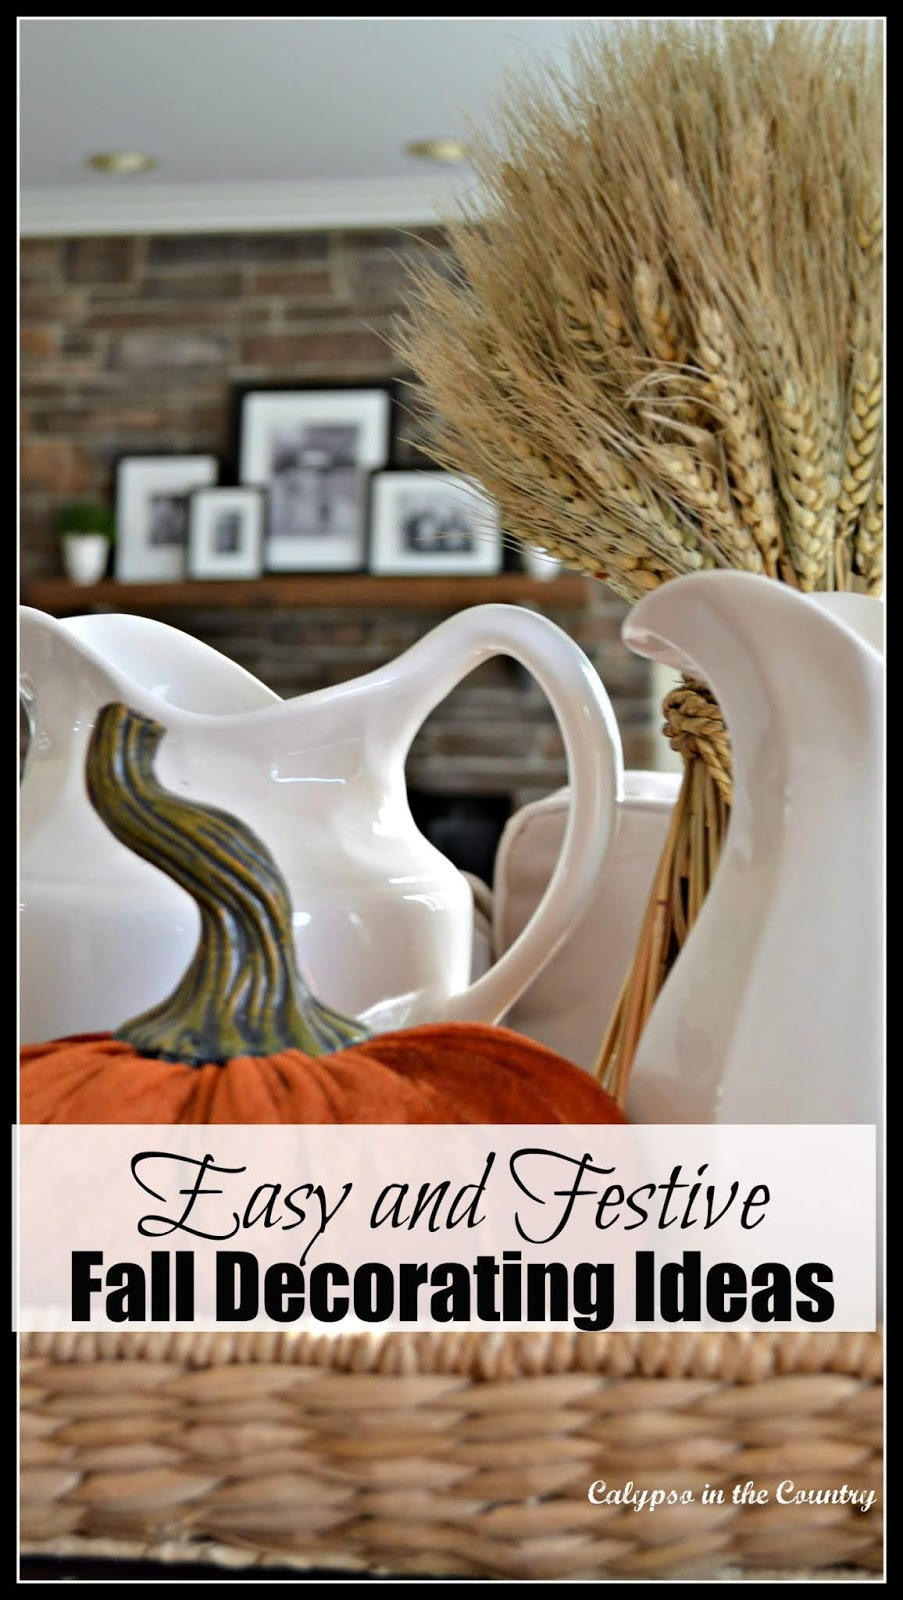 Easy and Festive Fall Decorating Ideas - A festive fall vignette